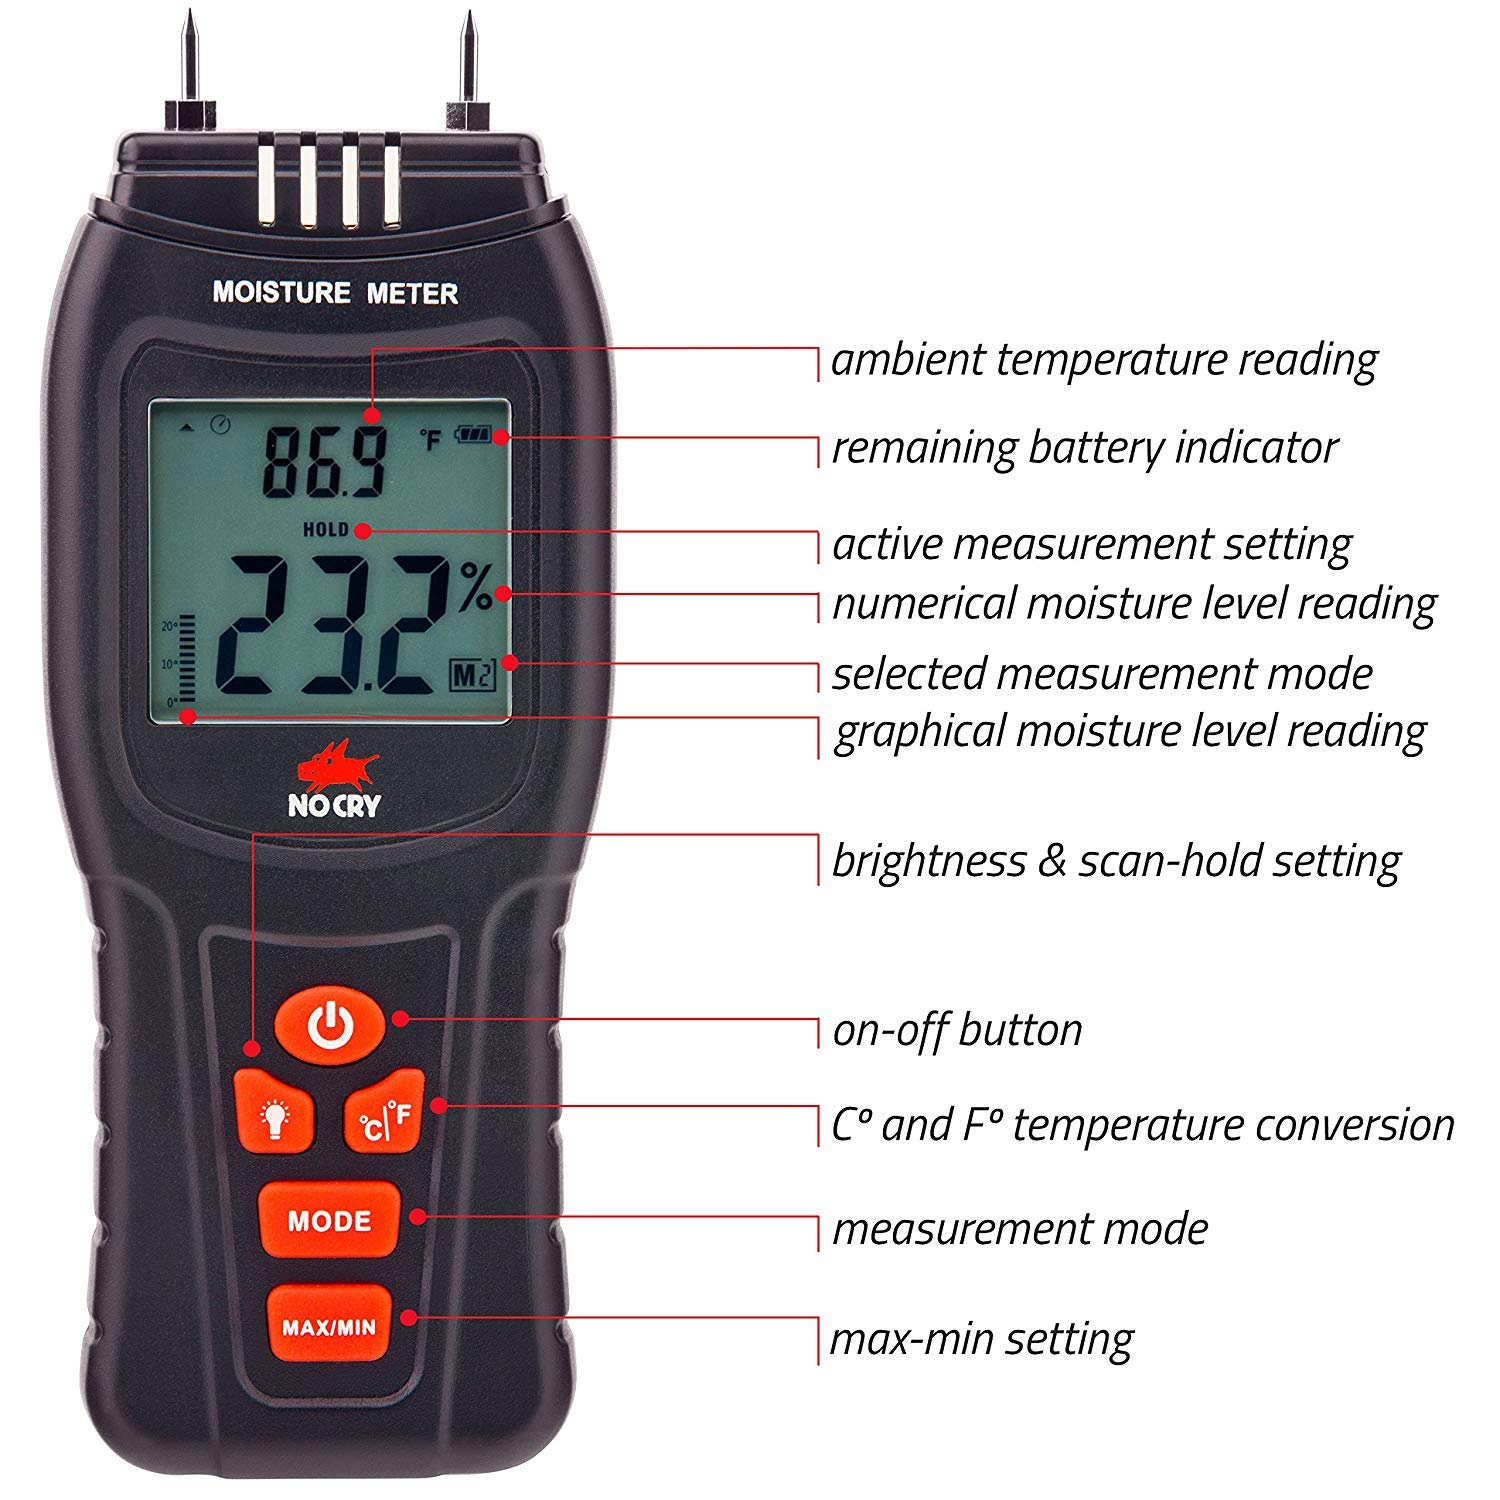 NoCry Digital Moisture Meter Battery and Replacement Electronic Probes Included NOCRY23 Water Leak Detector and Thermometer for Wood /& Building Materials